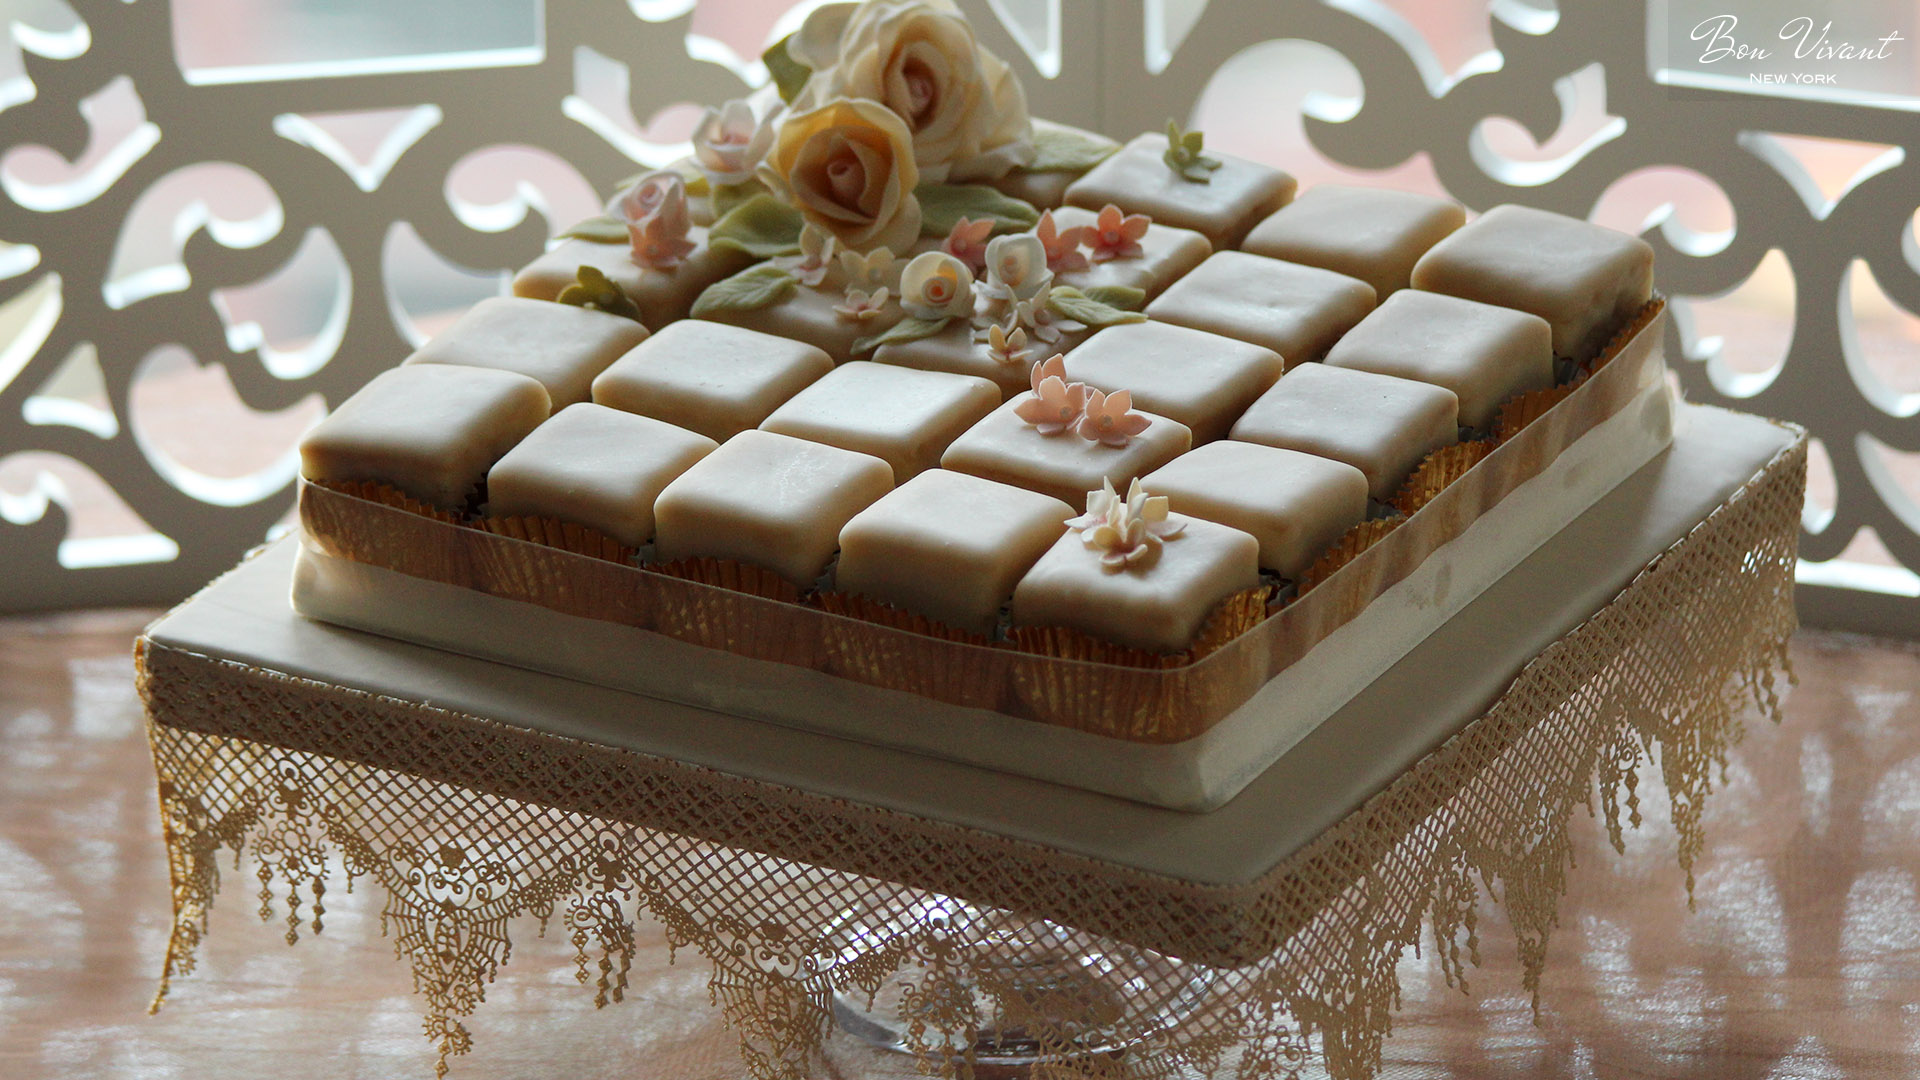 Ivory & Rose Wedding Collection - petit cakes with sugar roses and flowers